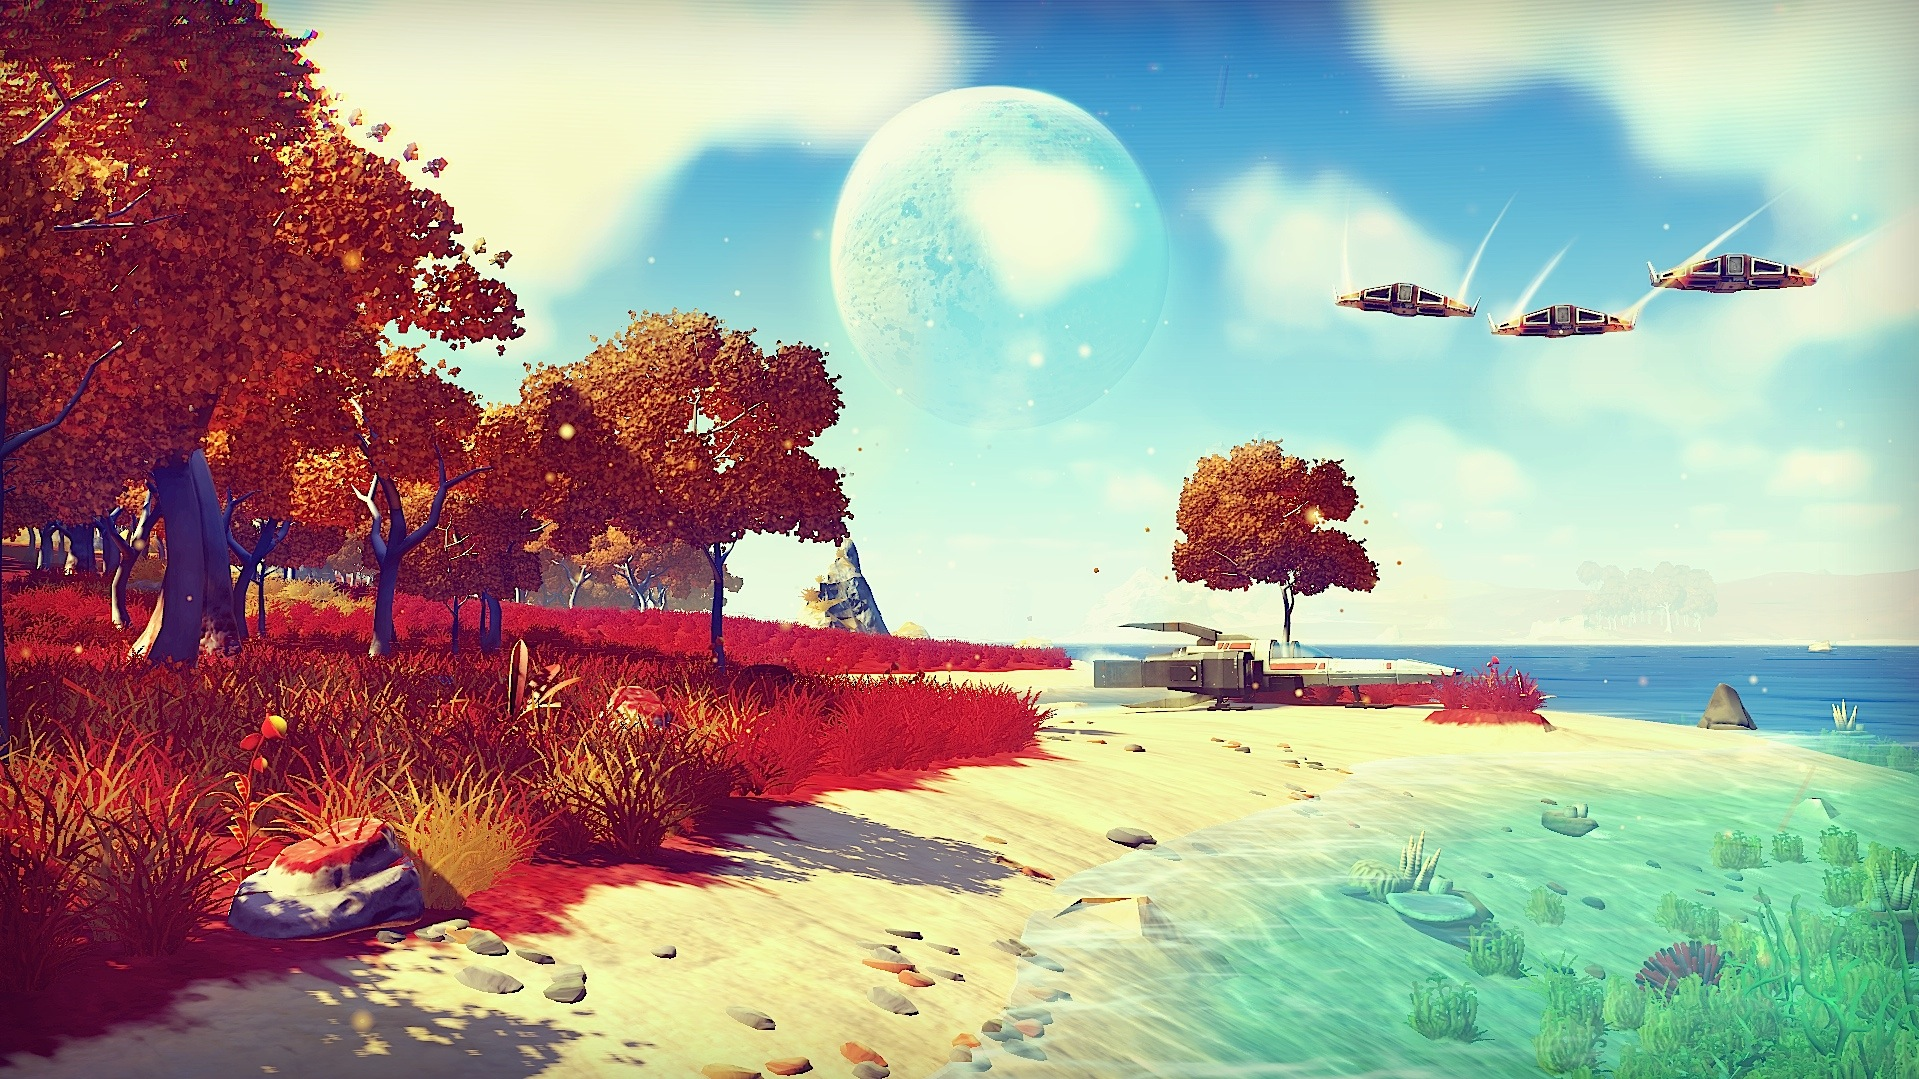 It's impossible to visit every planet in No Man's Sky